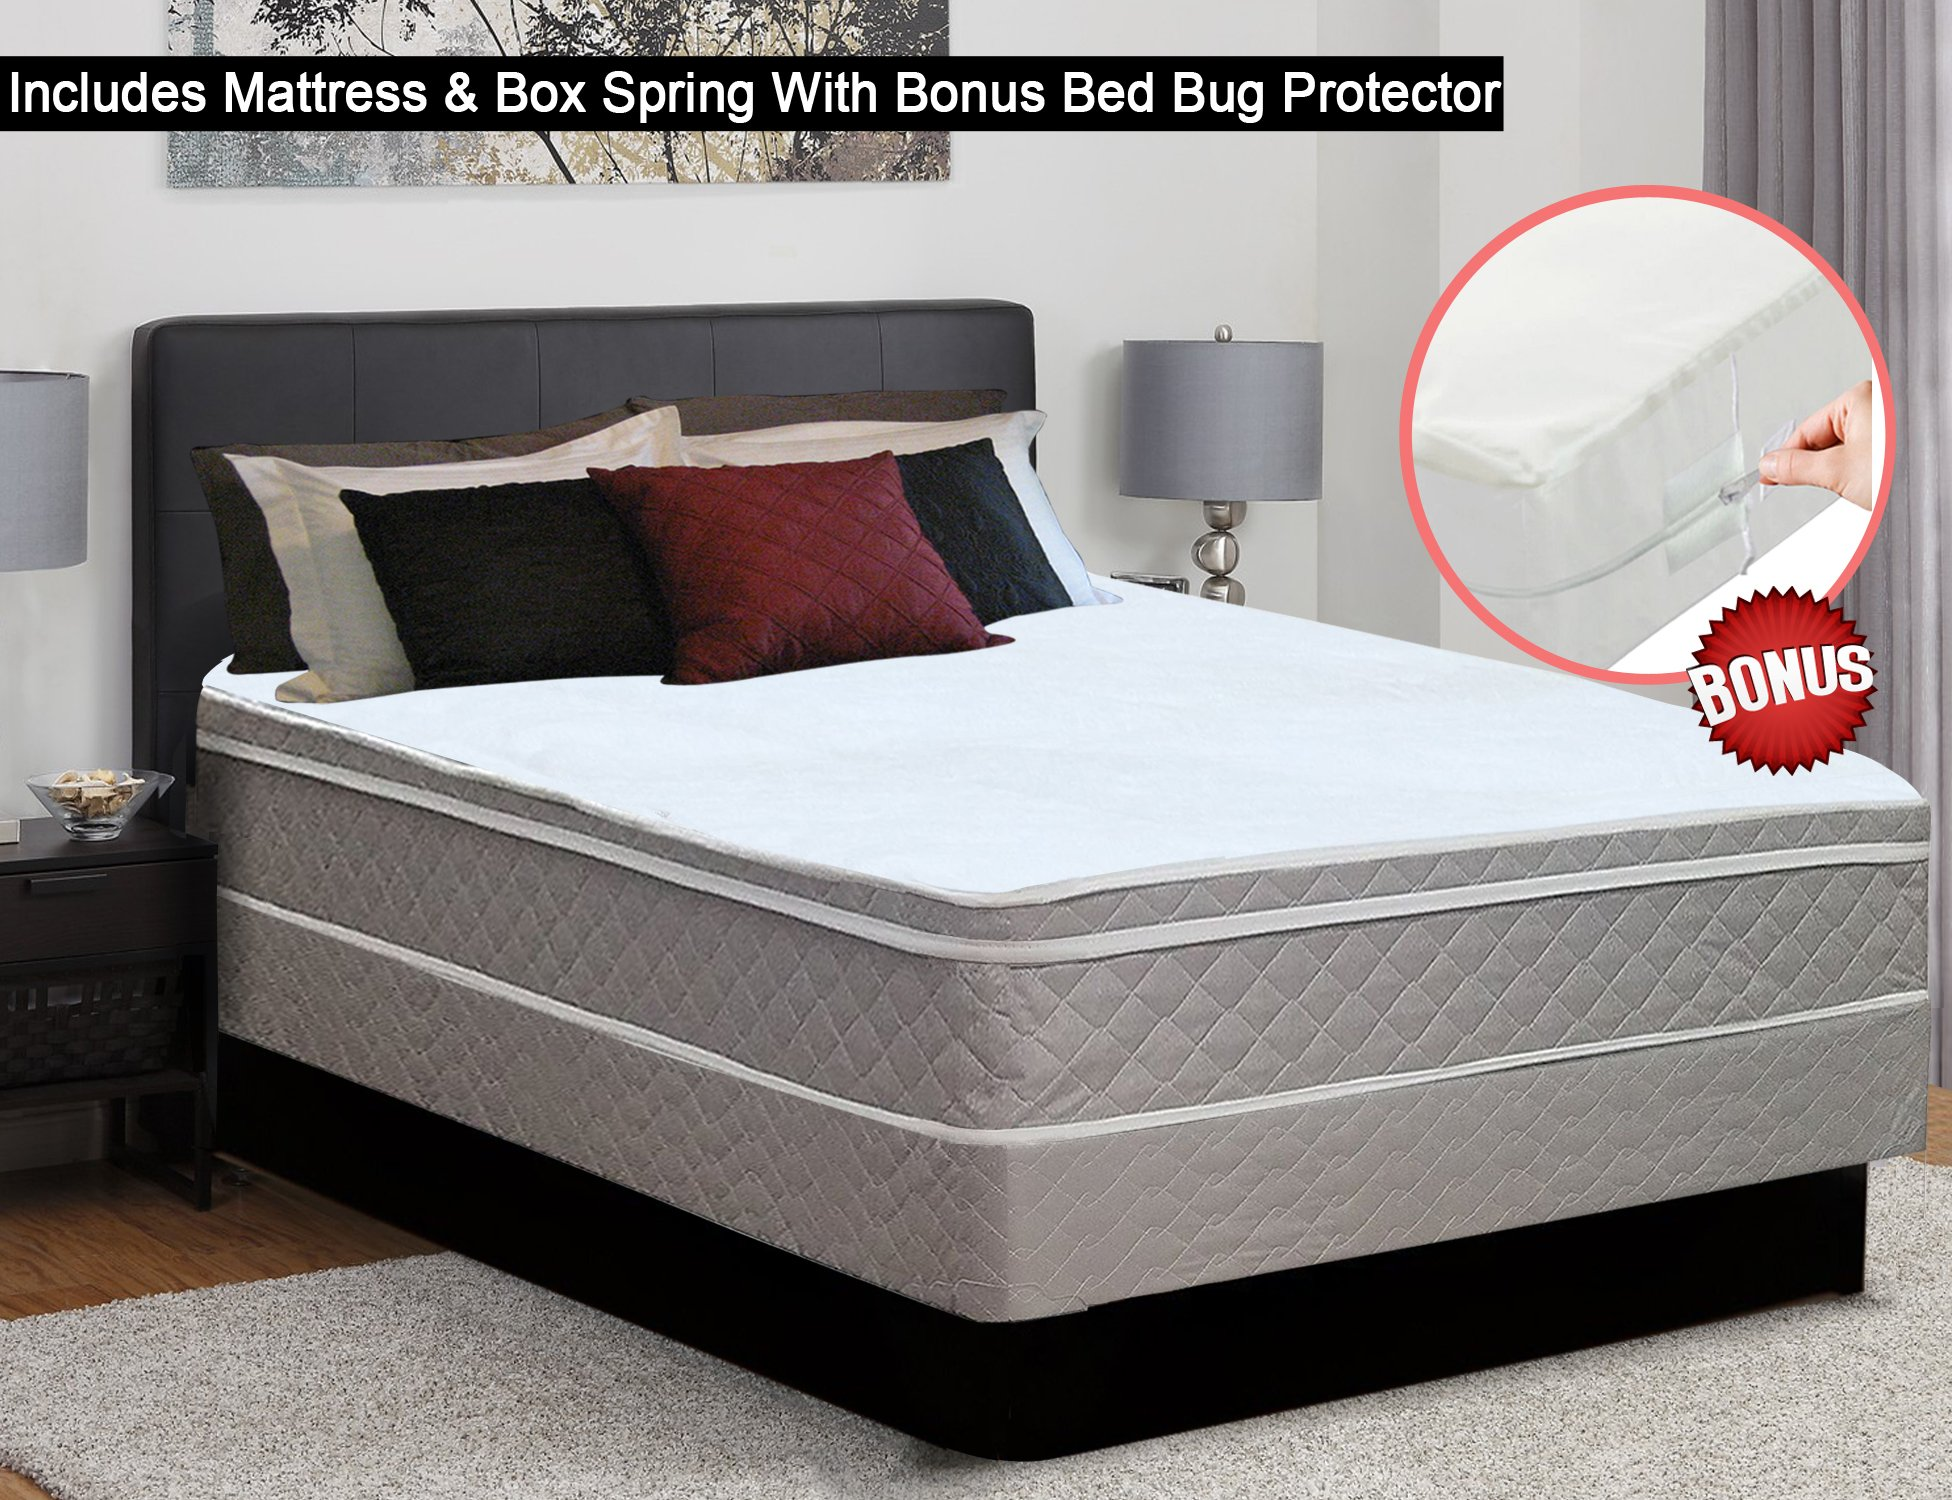 Continental Sleep 10-Inch Medium Plush Eurotop Pillowtop Innerspring Mattress and Traditional Box Spring/Foundation, Good For The Back, No Assembly Required, Queen, Size by Continental Sleep